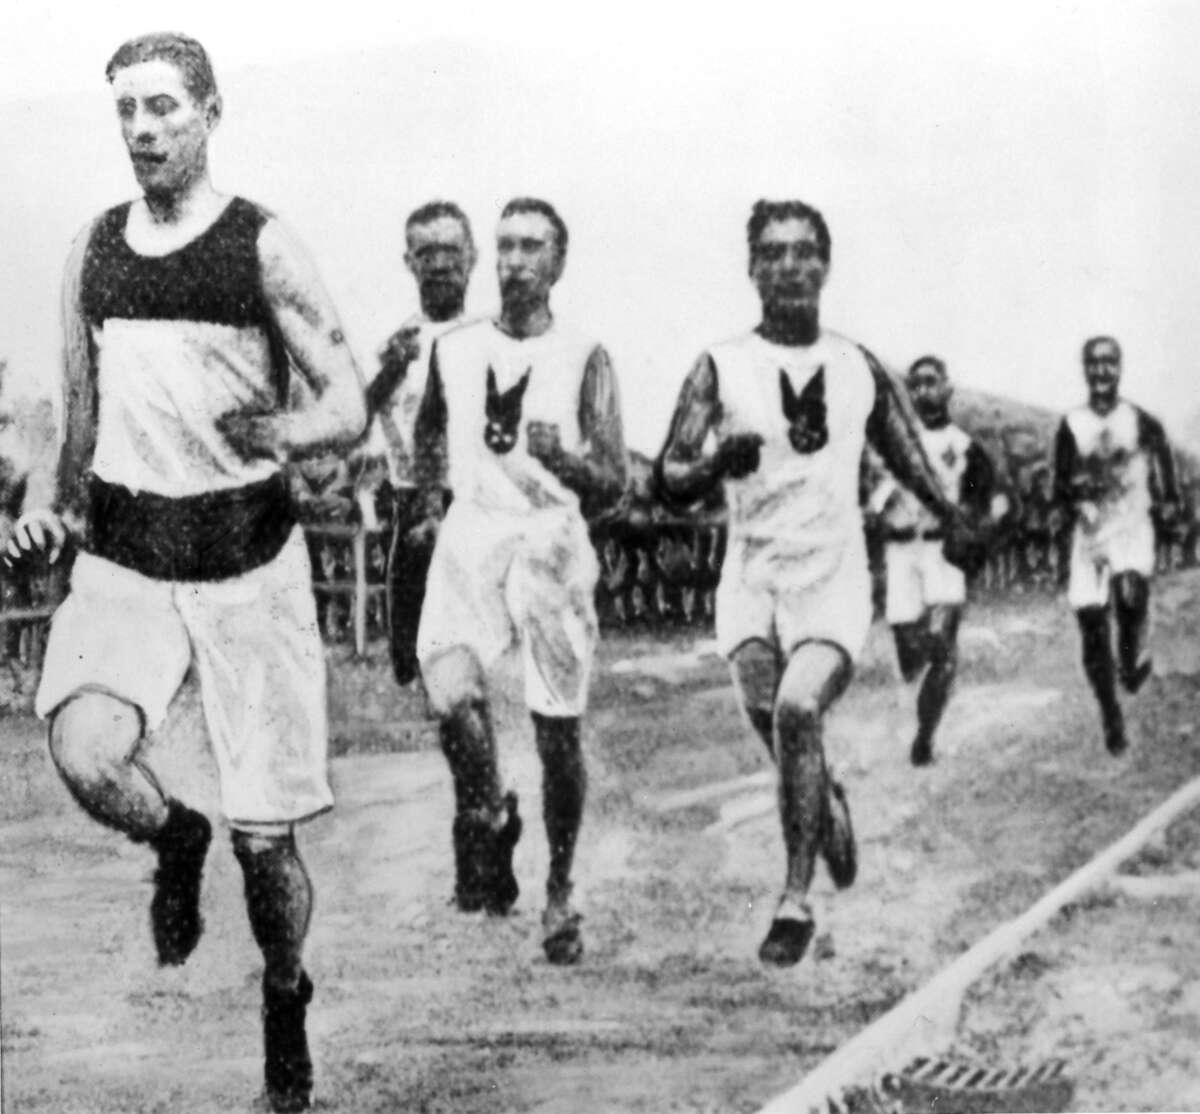 Runners participate in the 1500-meter track and field event during the 1904 St. Louis Olympics (Photo by ullstein bild/ullstein bild via Getty Images)